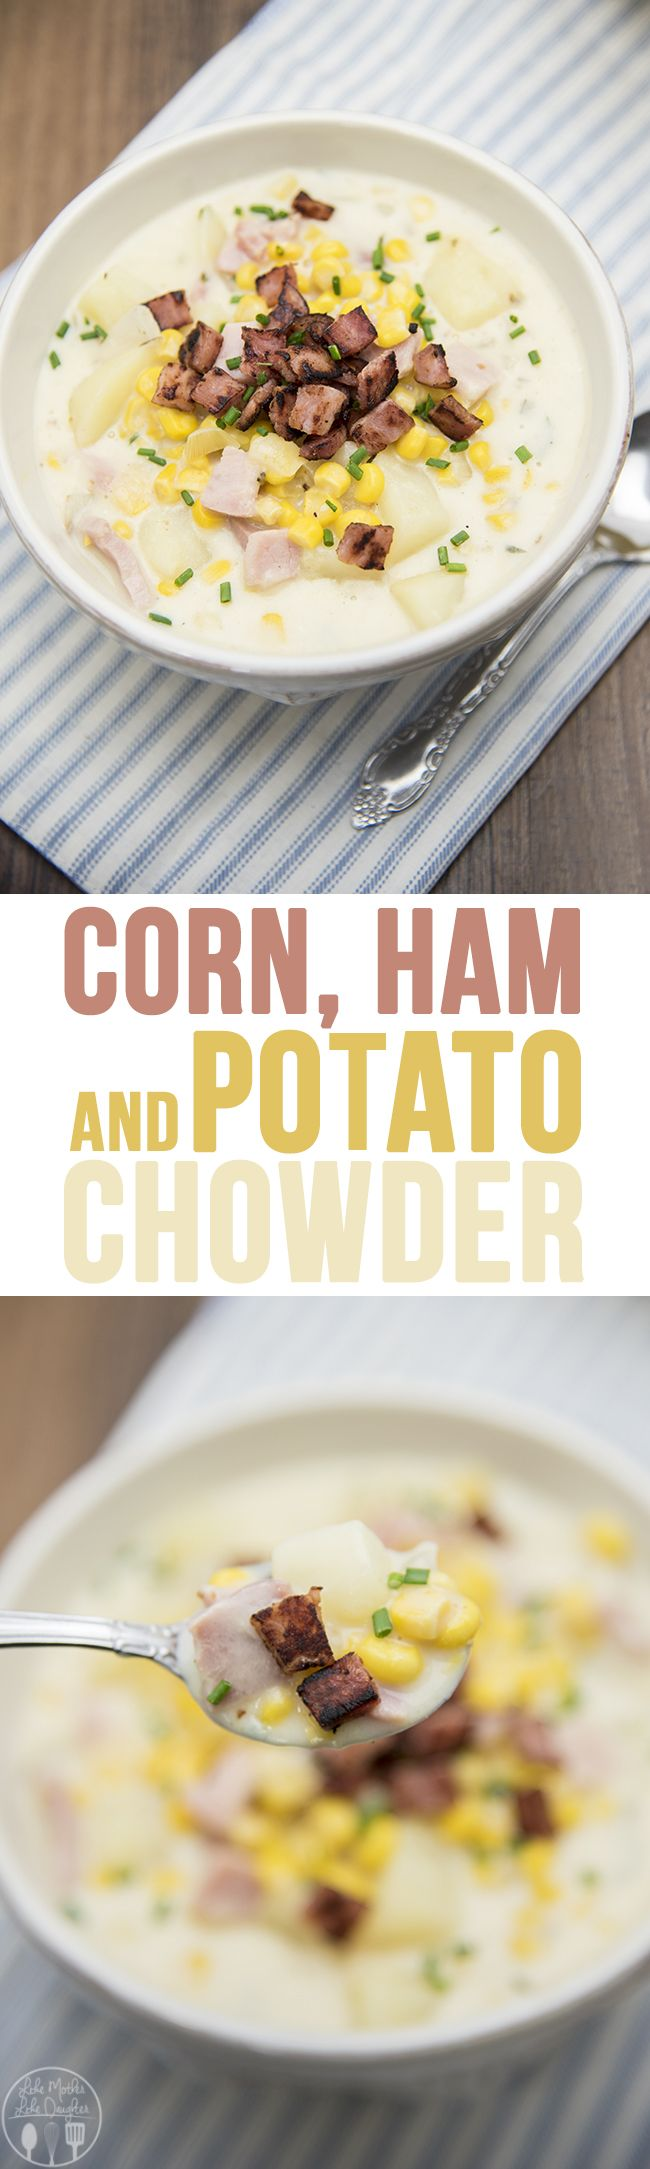 online nike shoe sales Corn  Ham and Potato Chowder   This creamy and hearty chowder is so delicious  and perfect for this cooler weather  It  39 ll quickly become your new favorite soup this season